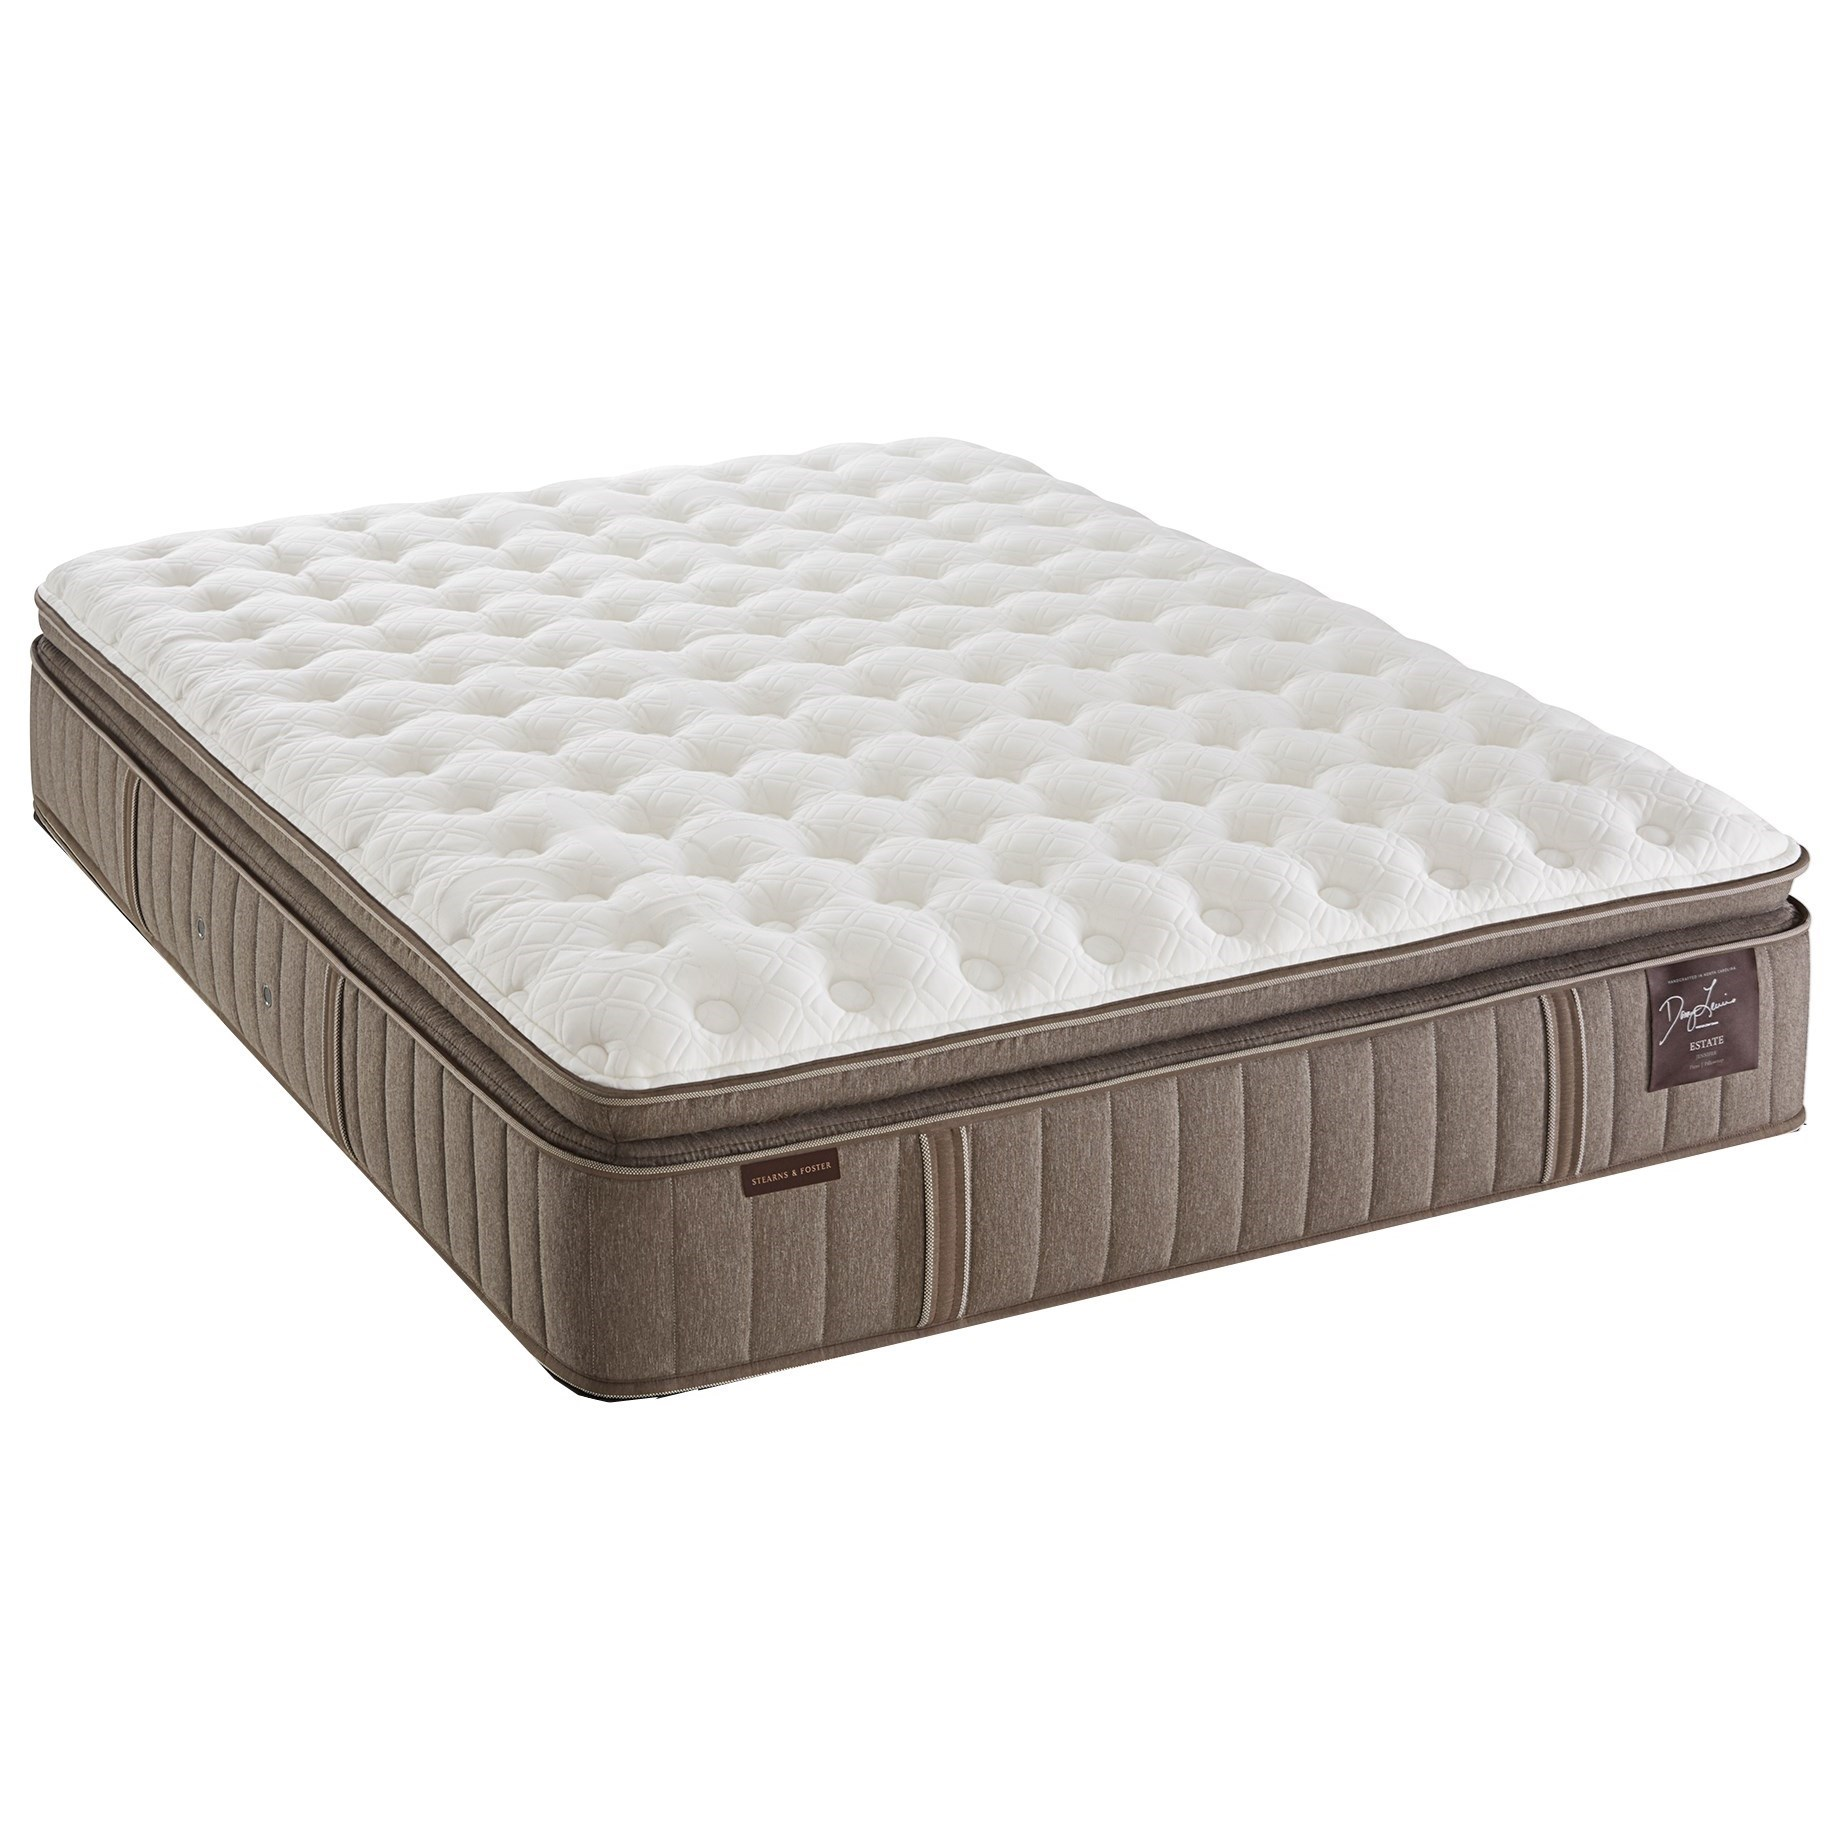 Stearns & Foster F2 Estate CF EPT 2016 King Cushion Firm Euro PT Mattress - Item Number: CushFirmEPT-K